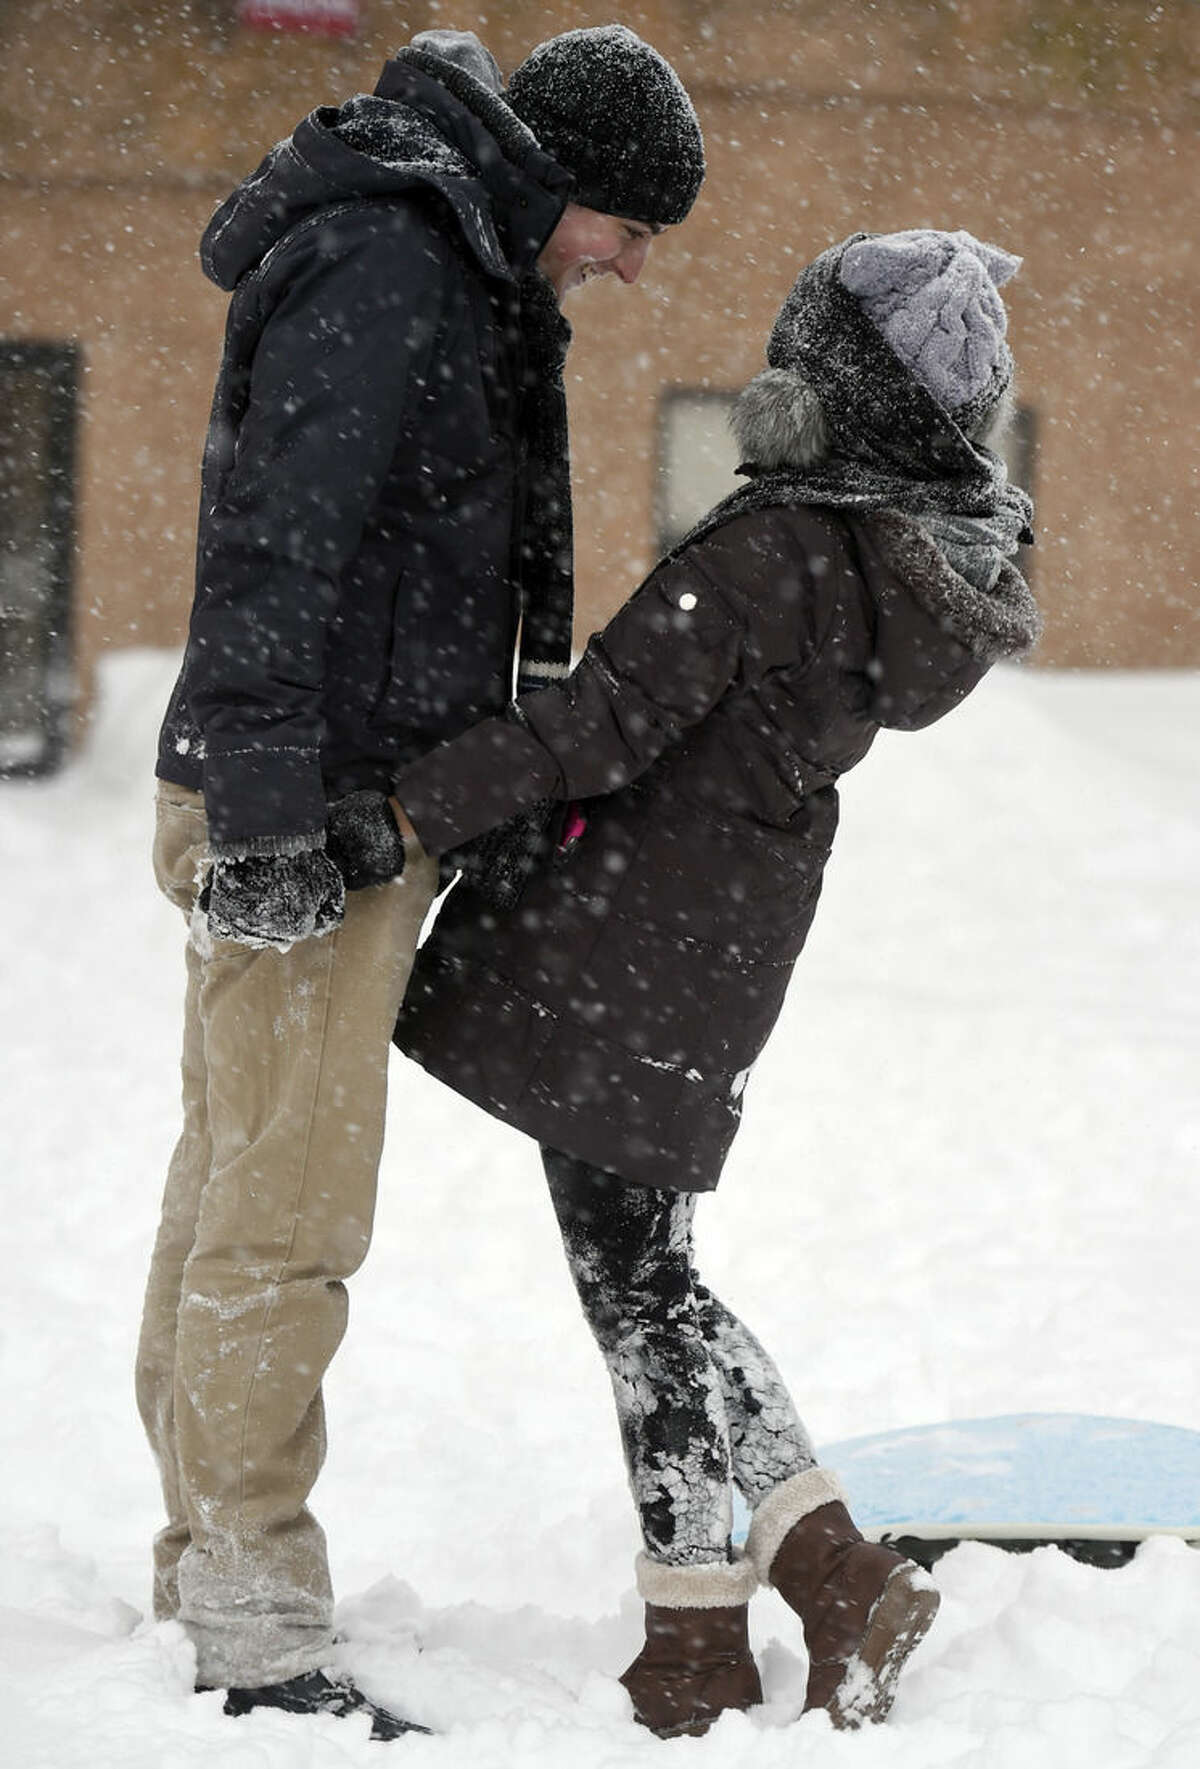 Pear Sutuntanjai, right, and Aaron Gionet frolic in the snow along Bath St. in downtown Norwich, Conn., Tuesday, Jan. 27, 2015, after a winter storm dumped nearly 2-feet of snow in the region. Sutuntanjai is from Thailand and interning at the nearby Foxwoods Resort Casino. This is her first ever experience of snow. (AP Photo/The Day, Sean D. Elliot) MANDATORY CREDIT